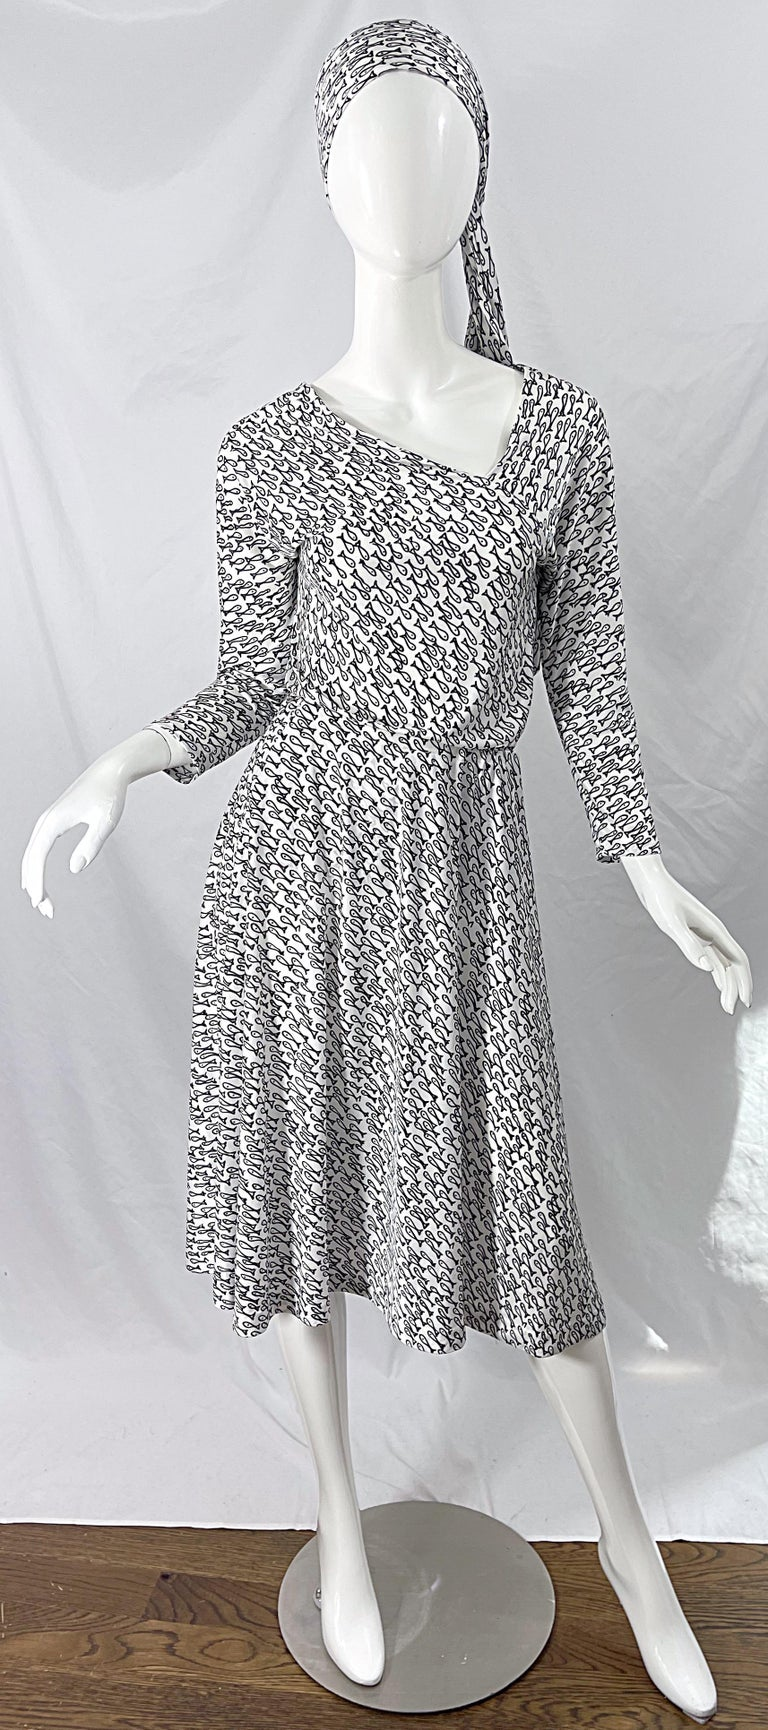 Rare HALSTON IV 1970s black and white novelty fish print three piece jersey ensemble ! Top features an asymmetrical neckline on the front and back. Skirt is a flirty easy fit with an elastic waistband. Sash can be used as a belt or head scarf. All 3